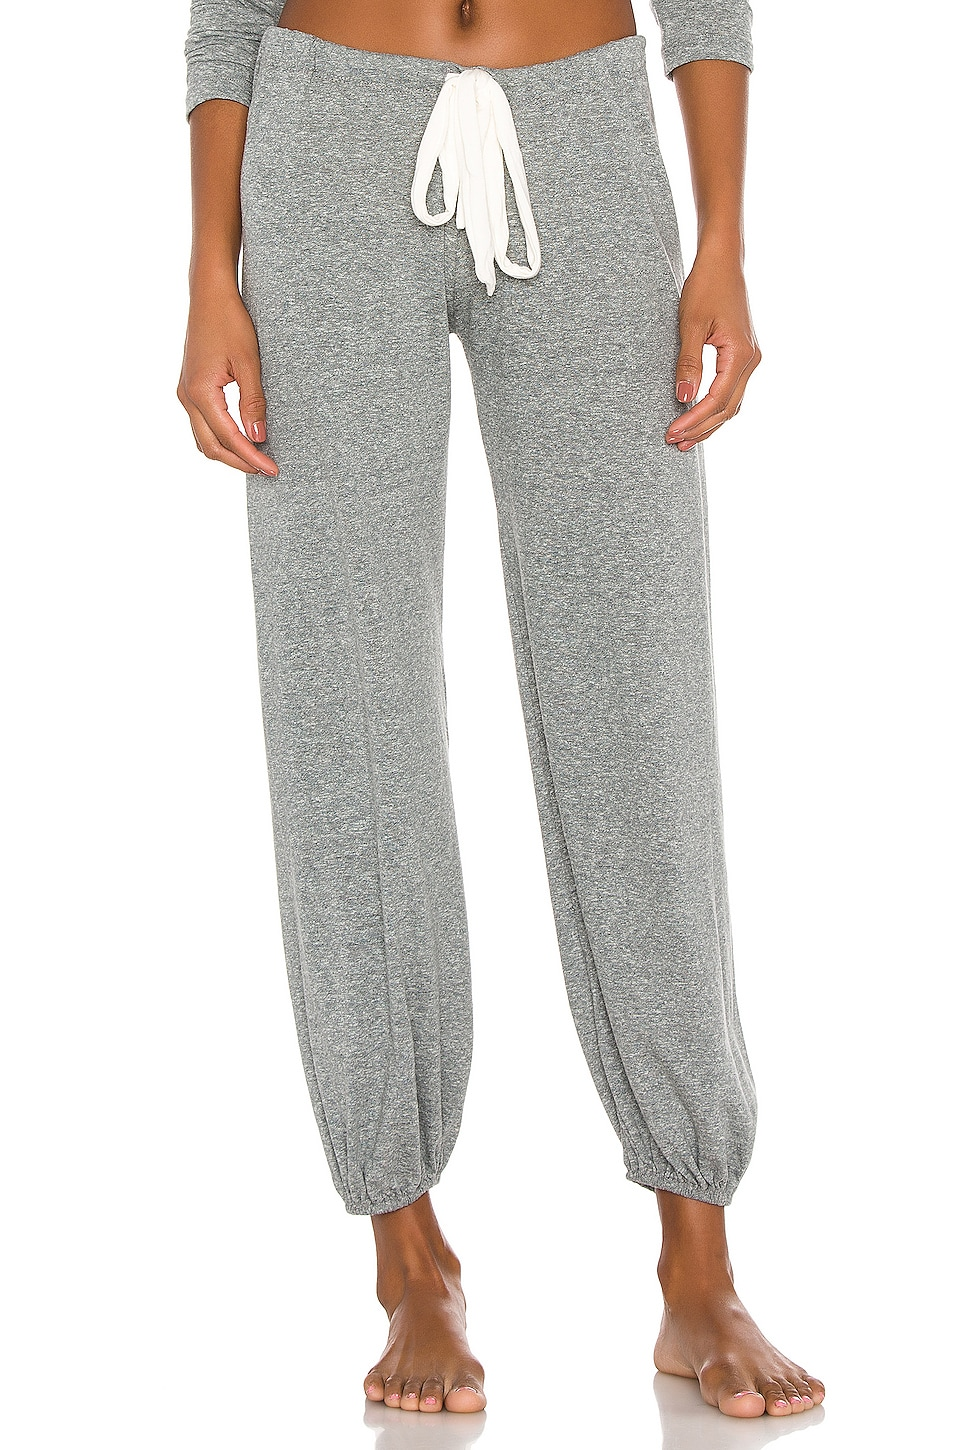 eberjey Heather Pant in Heather Gray